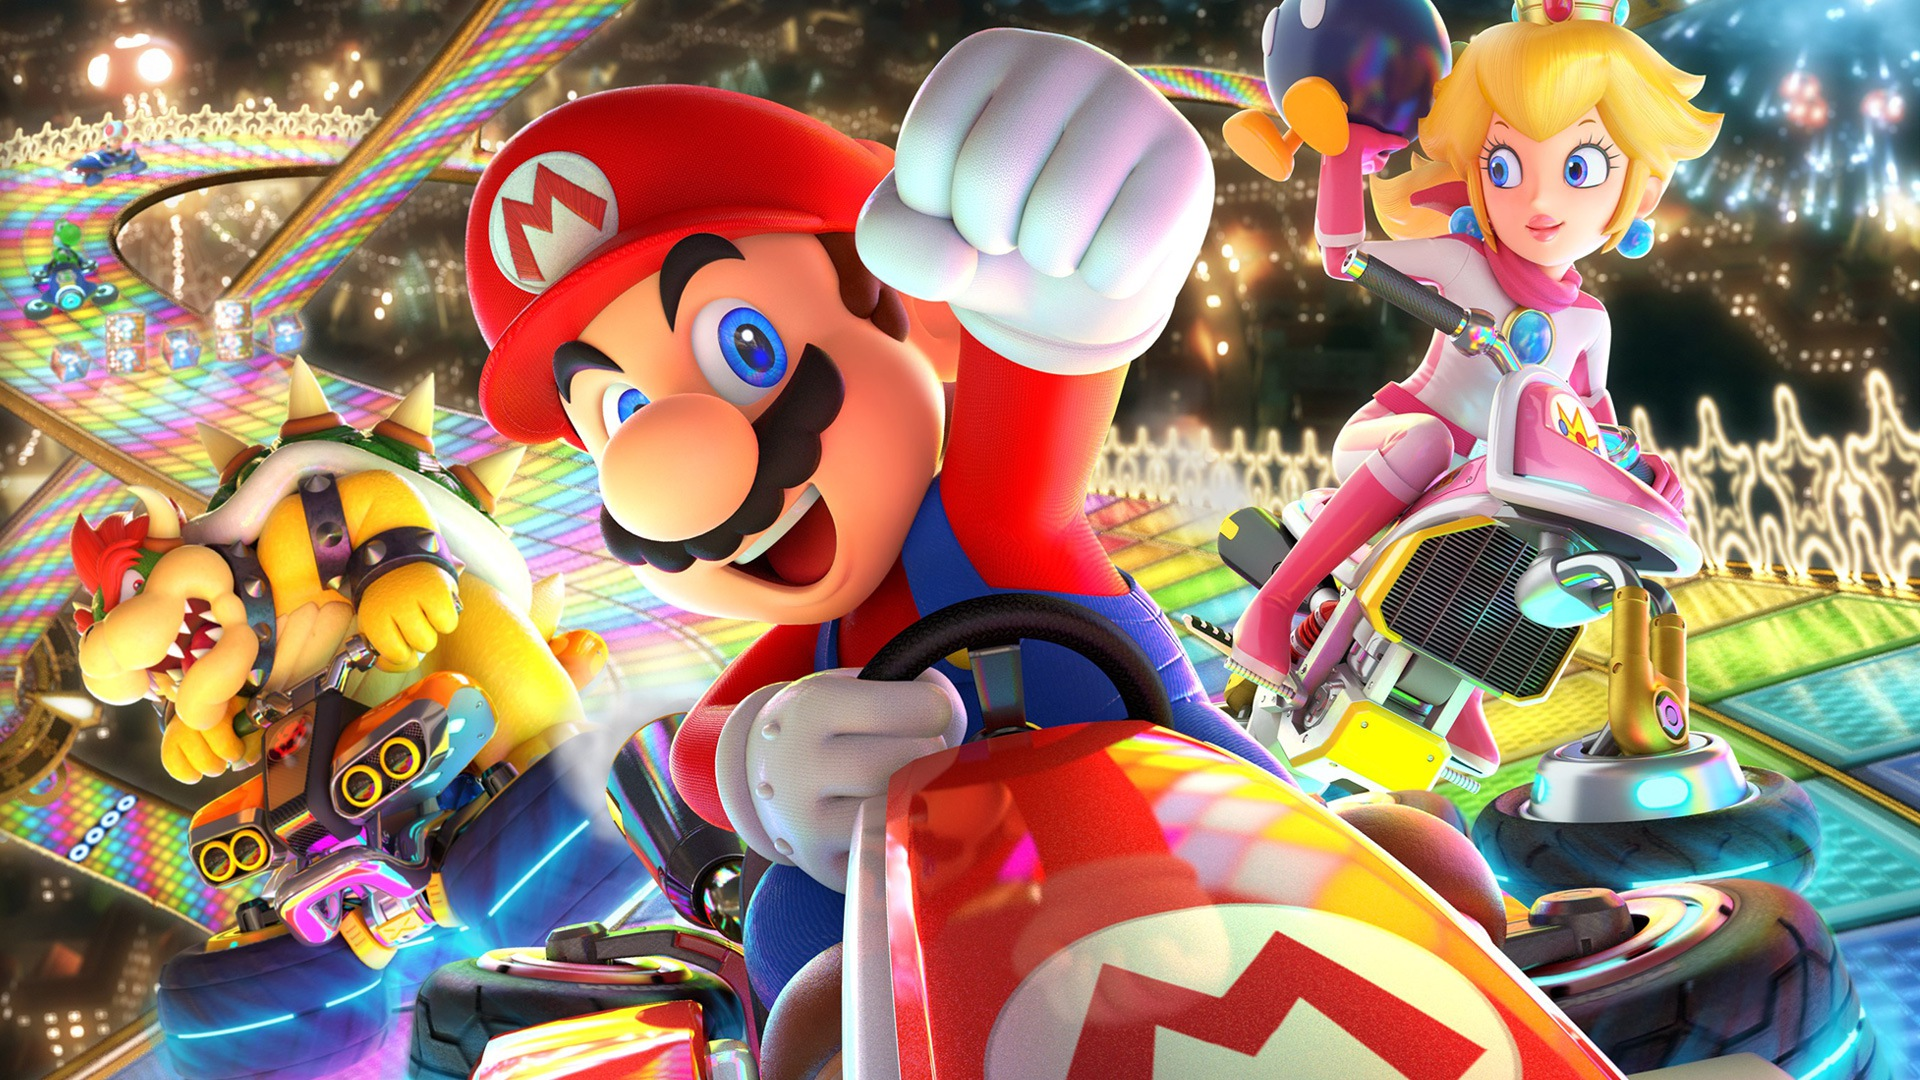 Analyst Mario Kart 8 Deluxe Isnt Any Ordinary Success